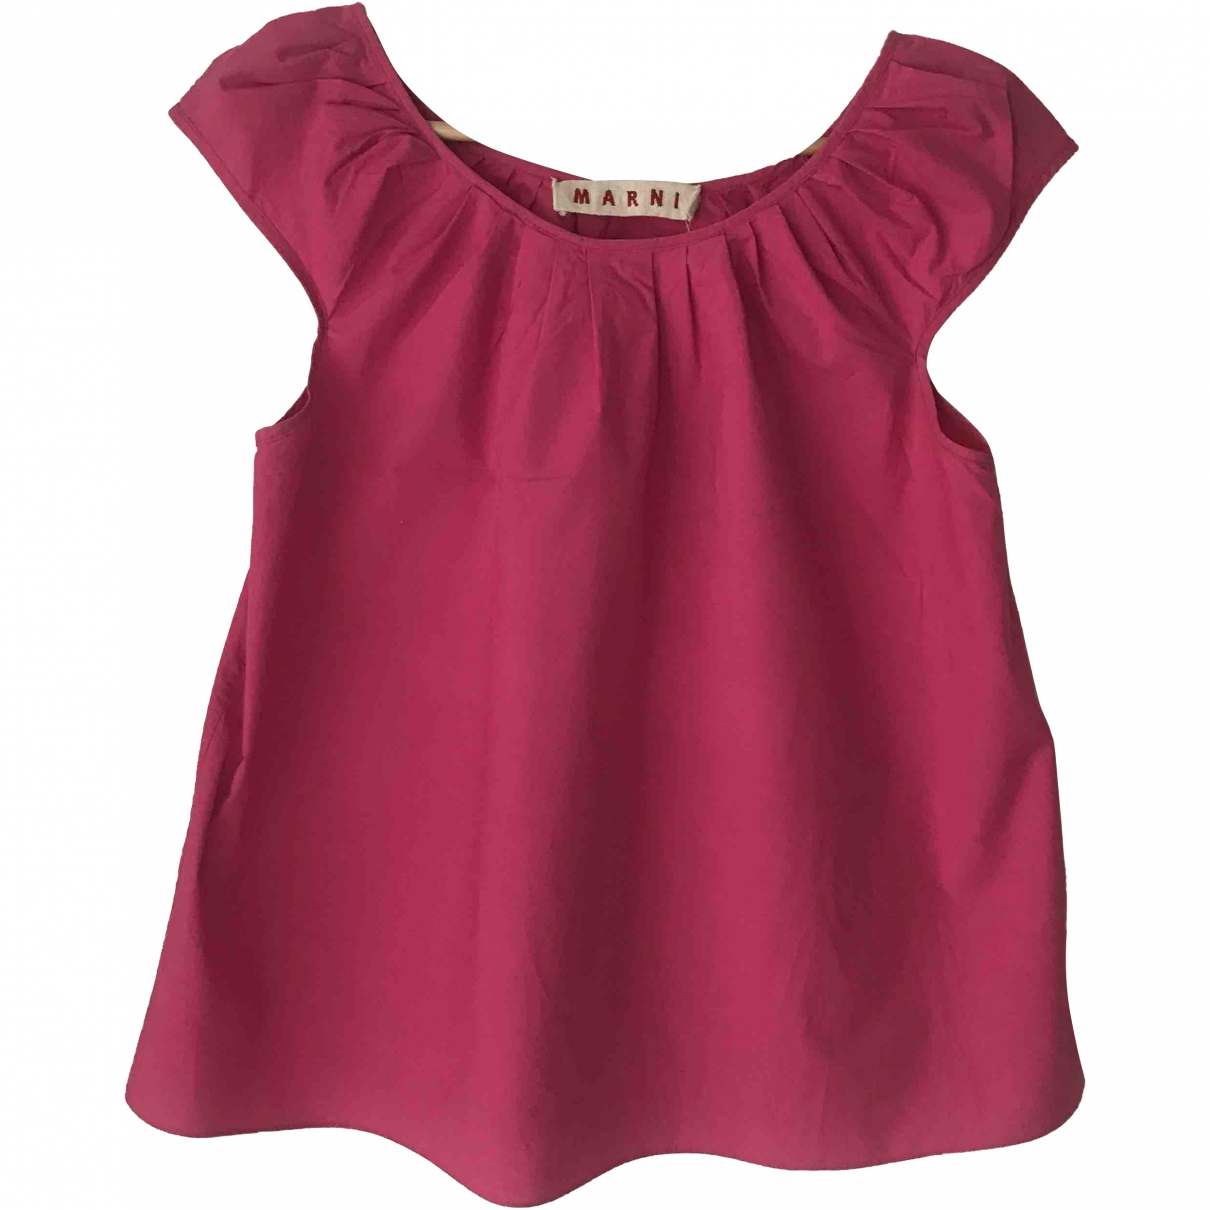 Marni \N Pink Cotton  top for Women 38 IT